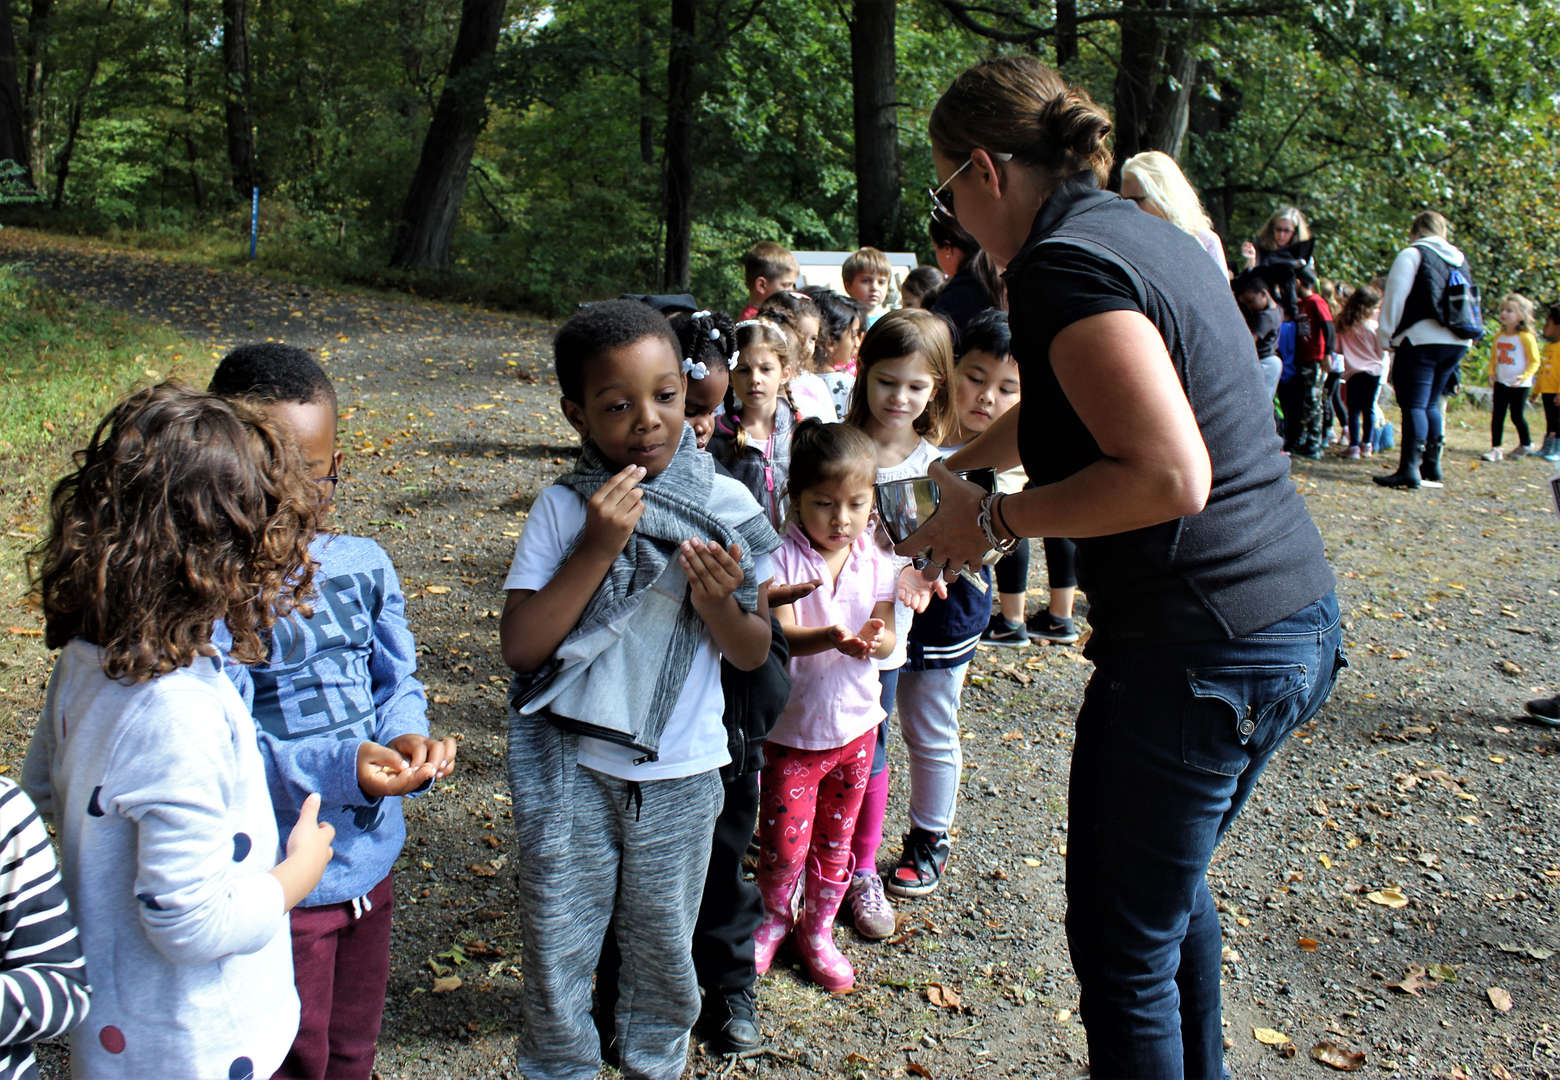 Children sample maple syrup jelly beans at one of the educational stations.